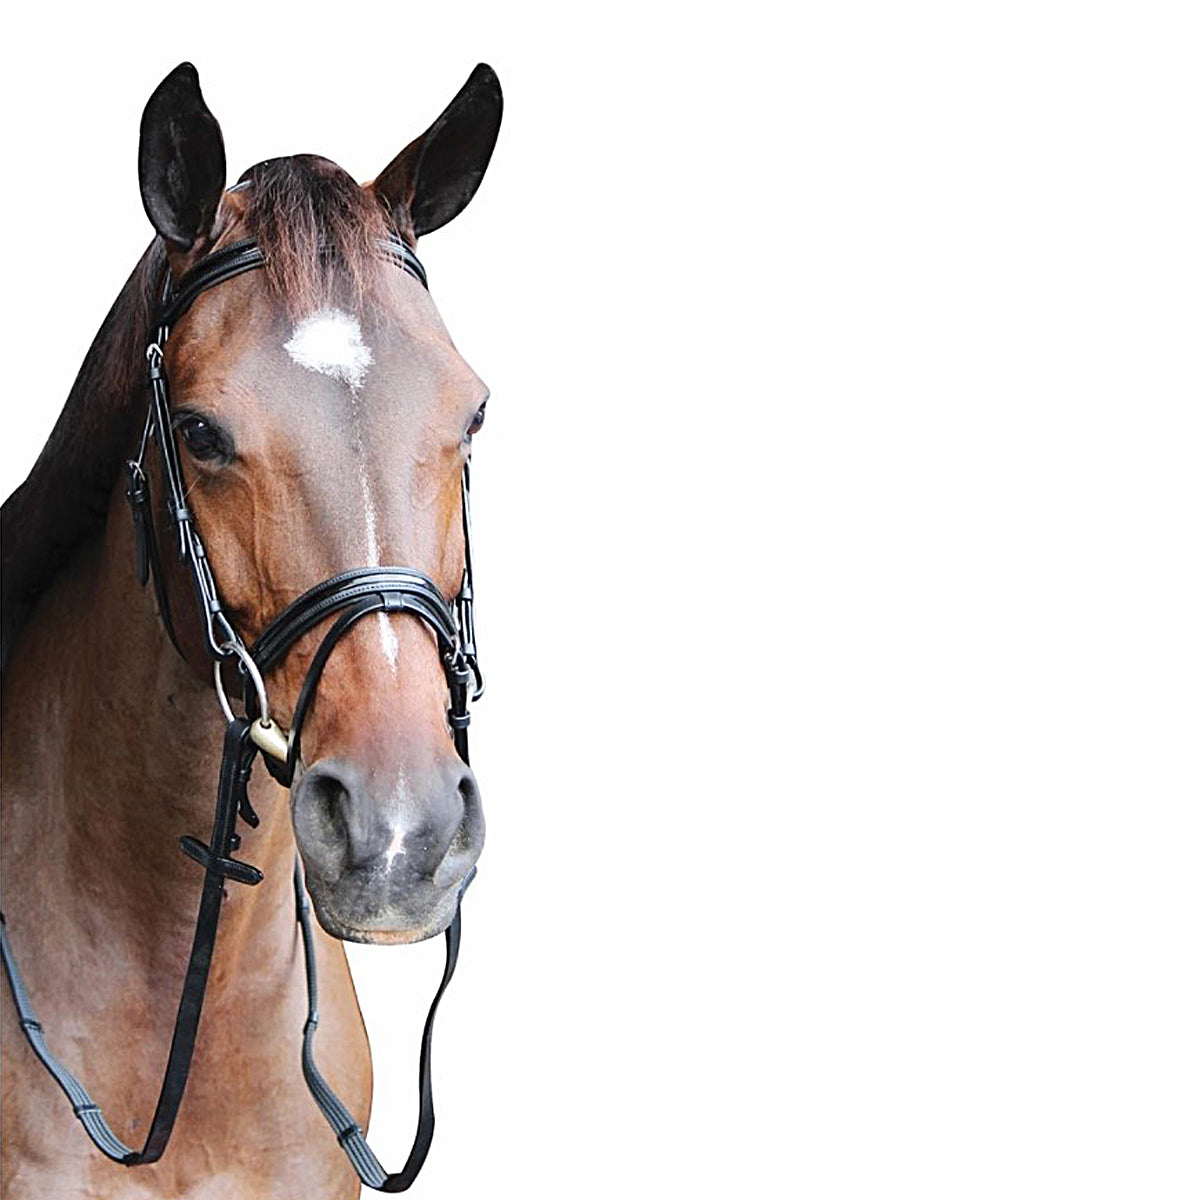 HDR Pro Piaffe Mono Crown Bridle and Flash Noseband with Patent Leather and Webbed Rubber Reins